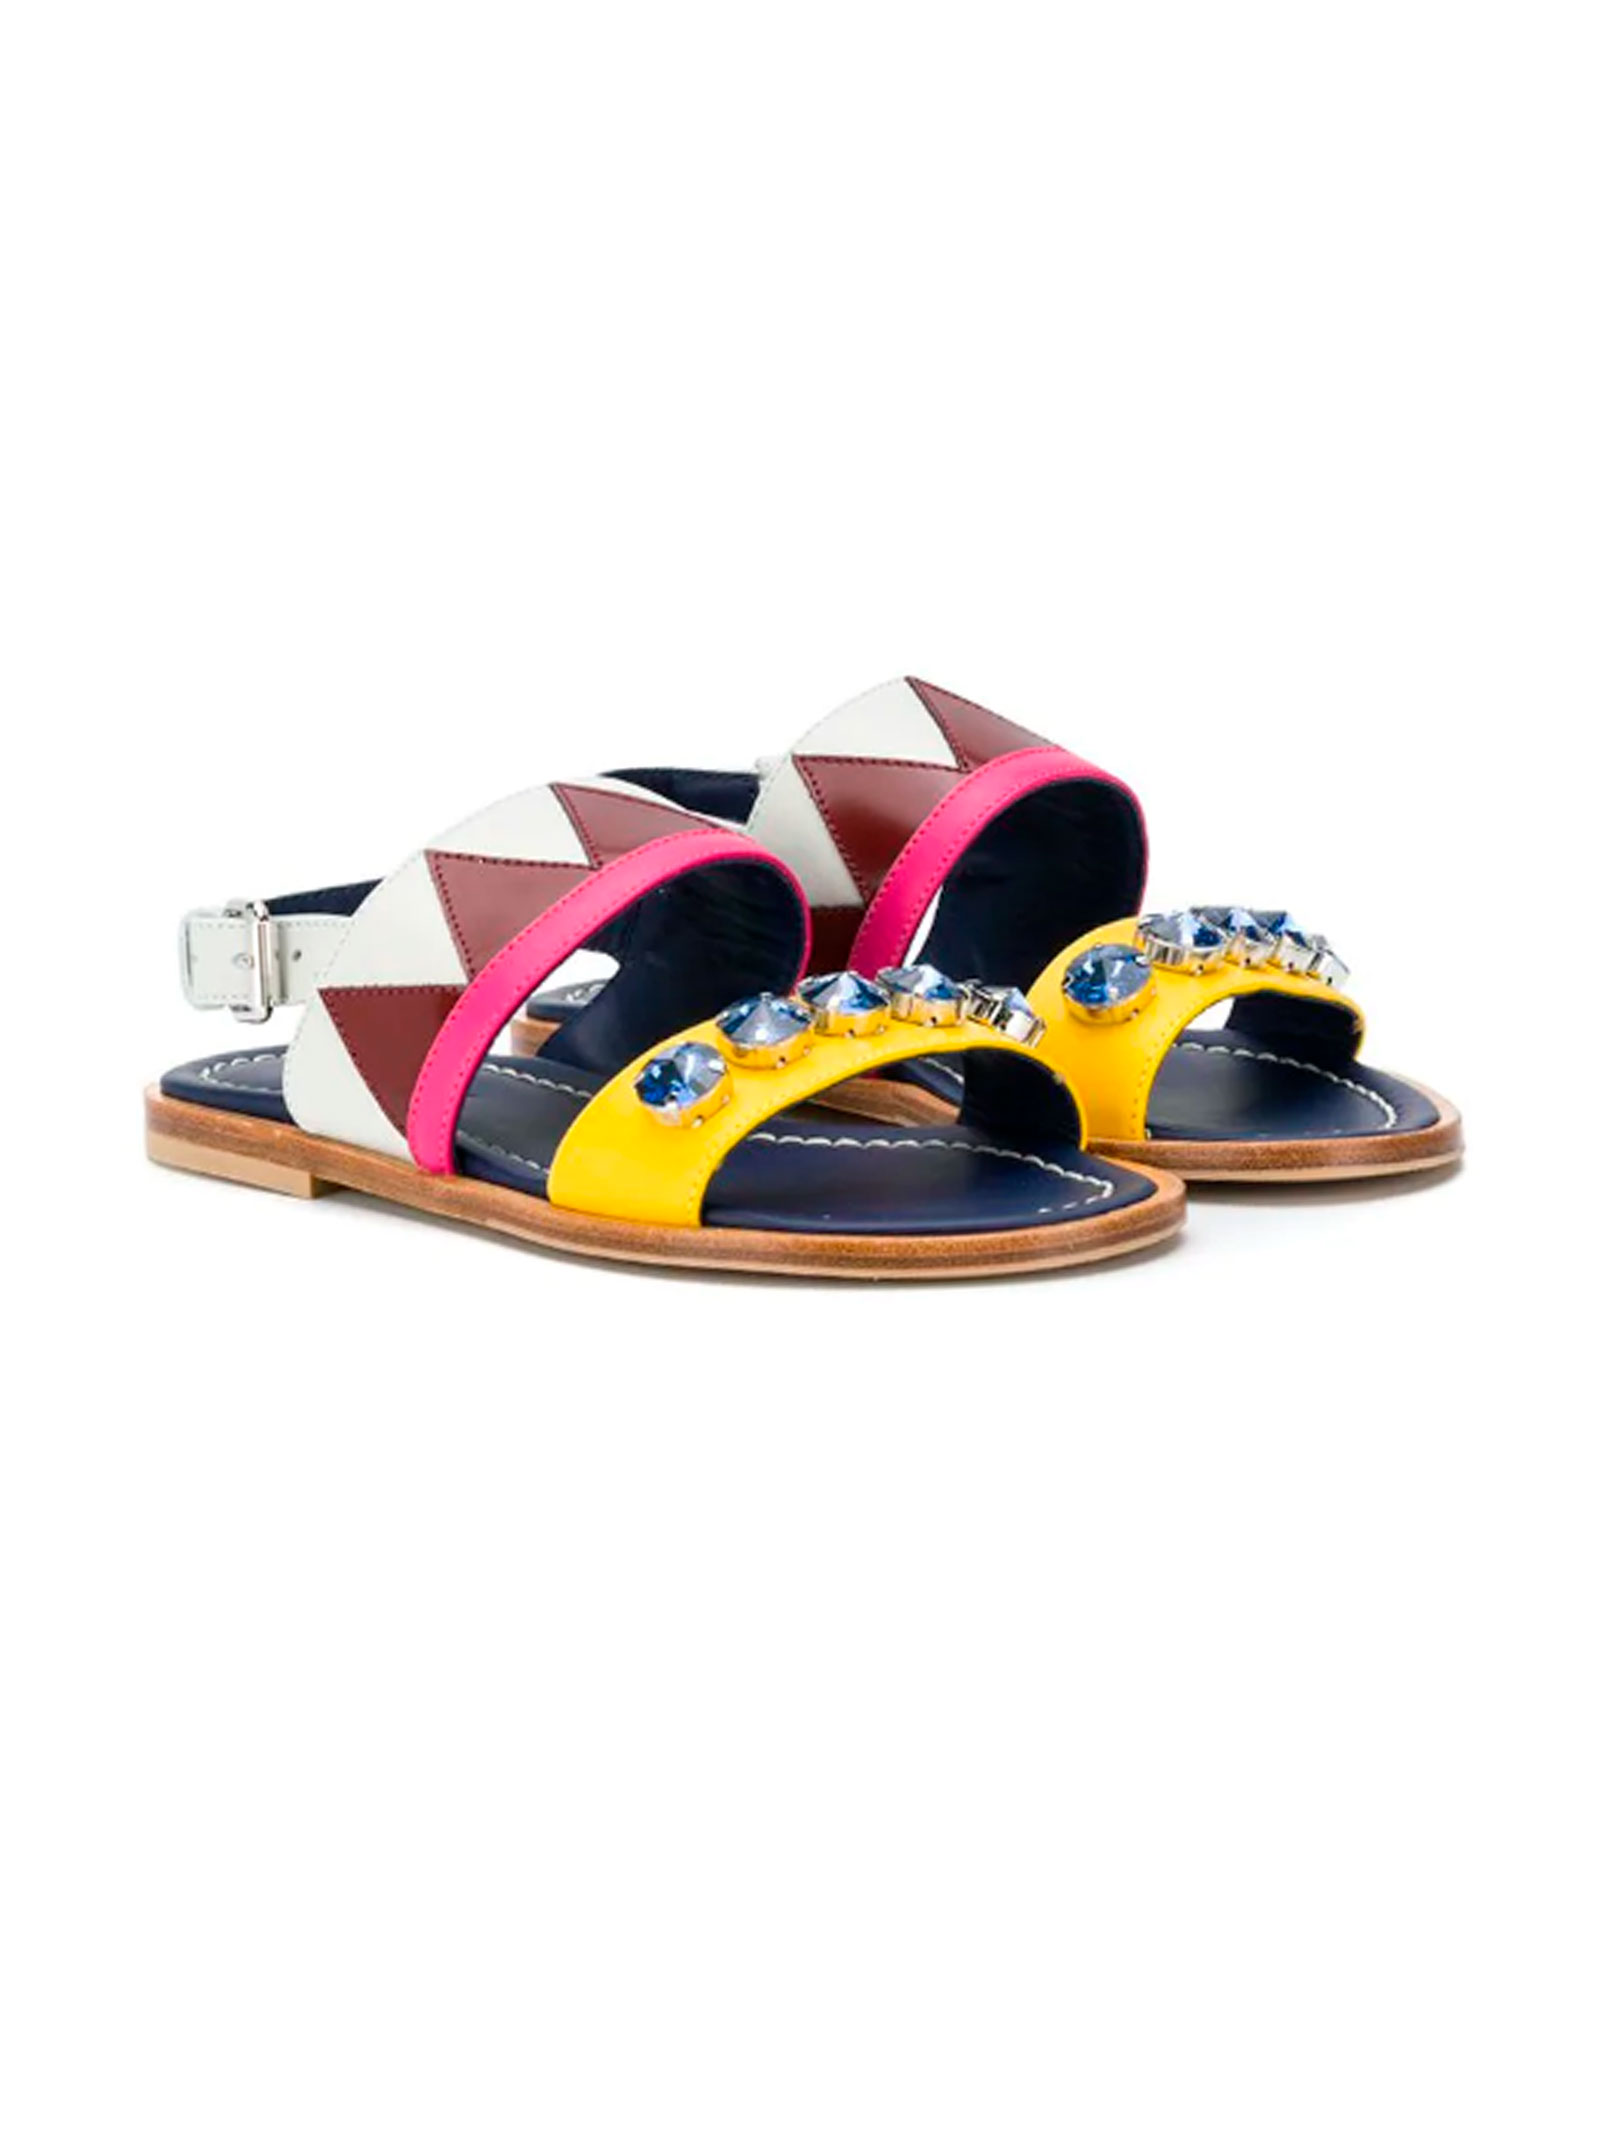 ee0867584a75c MULTICOLORED SANDALS GUCCI KIDS TEEN - MARNI KIDS - Mancini Junior